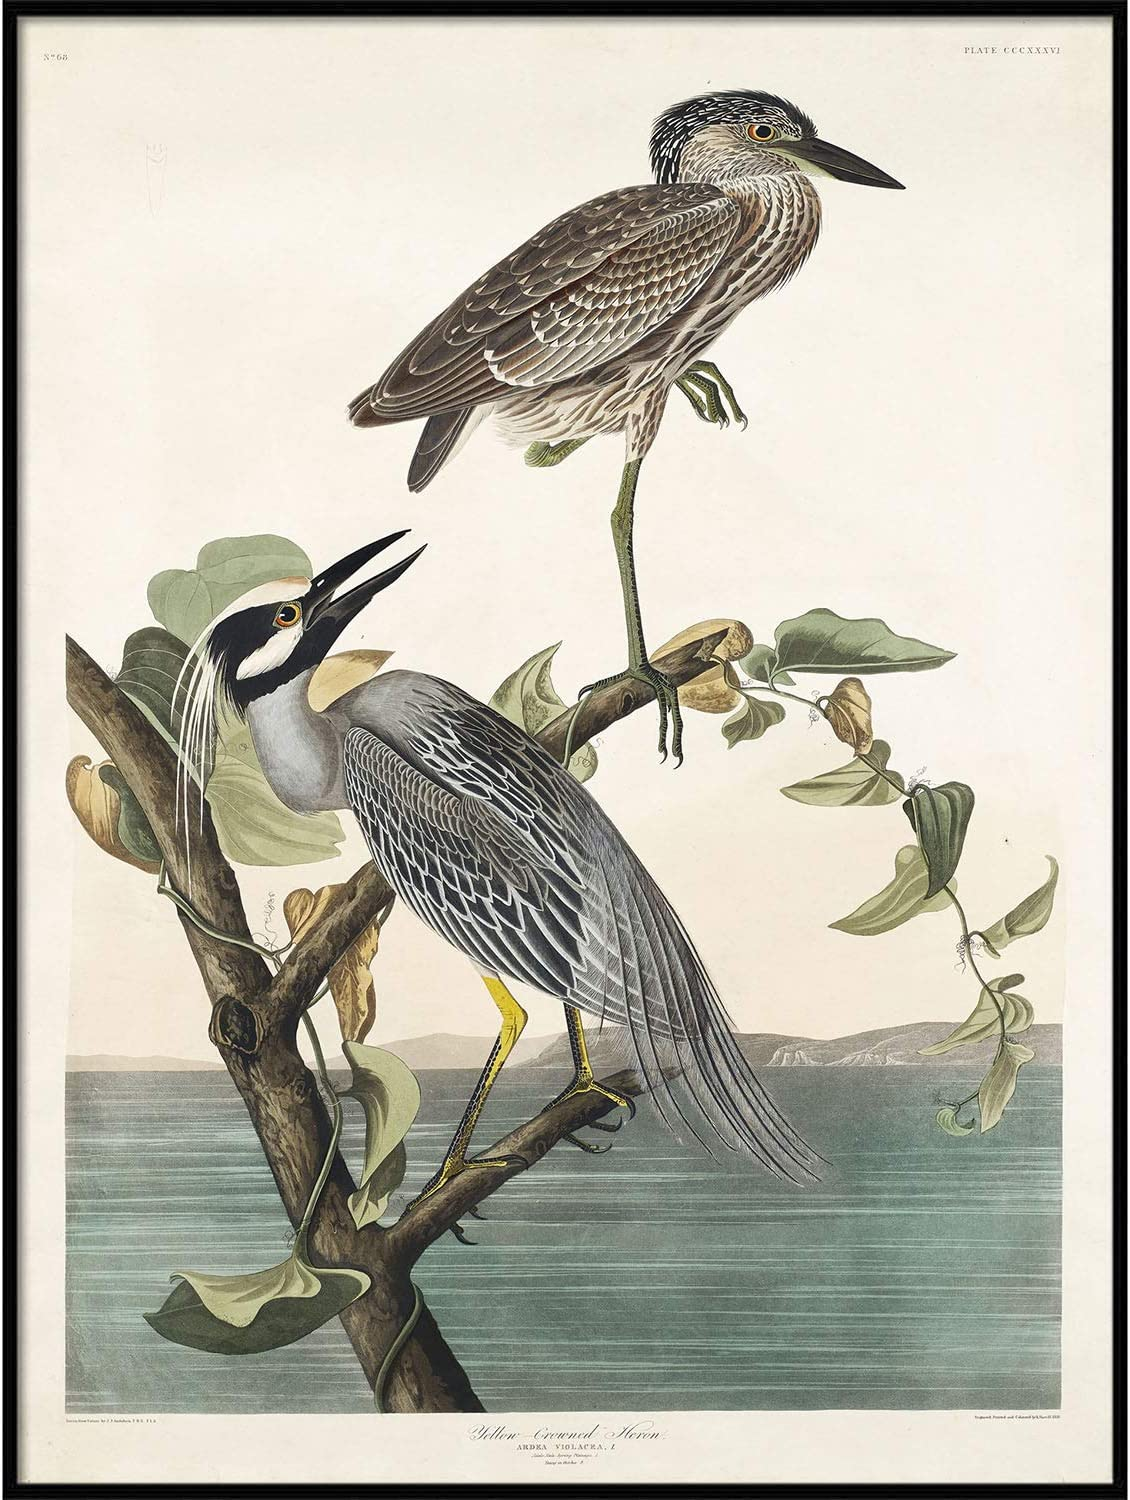 Heron Print Antique Bird Sales for sale Painting Vintage Drawing Superlatite Wall Poster